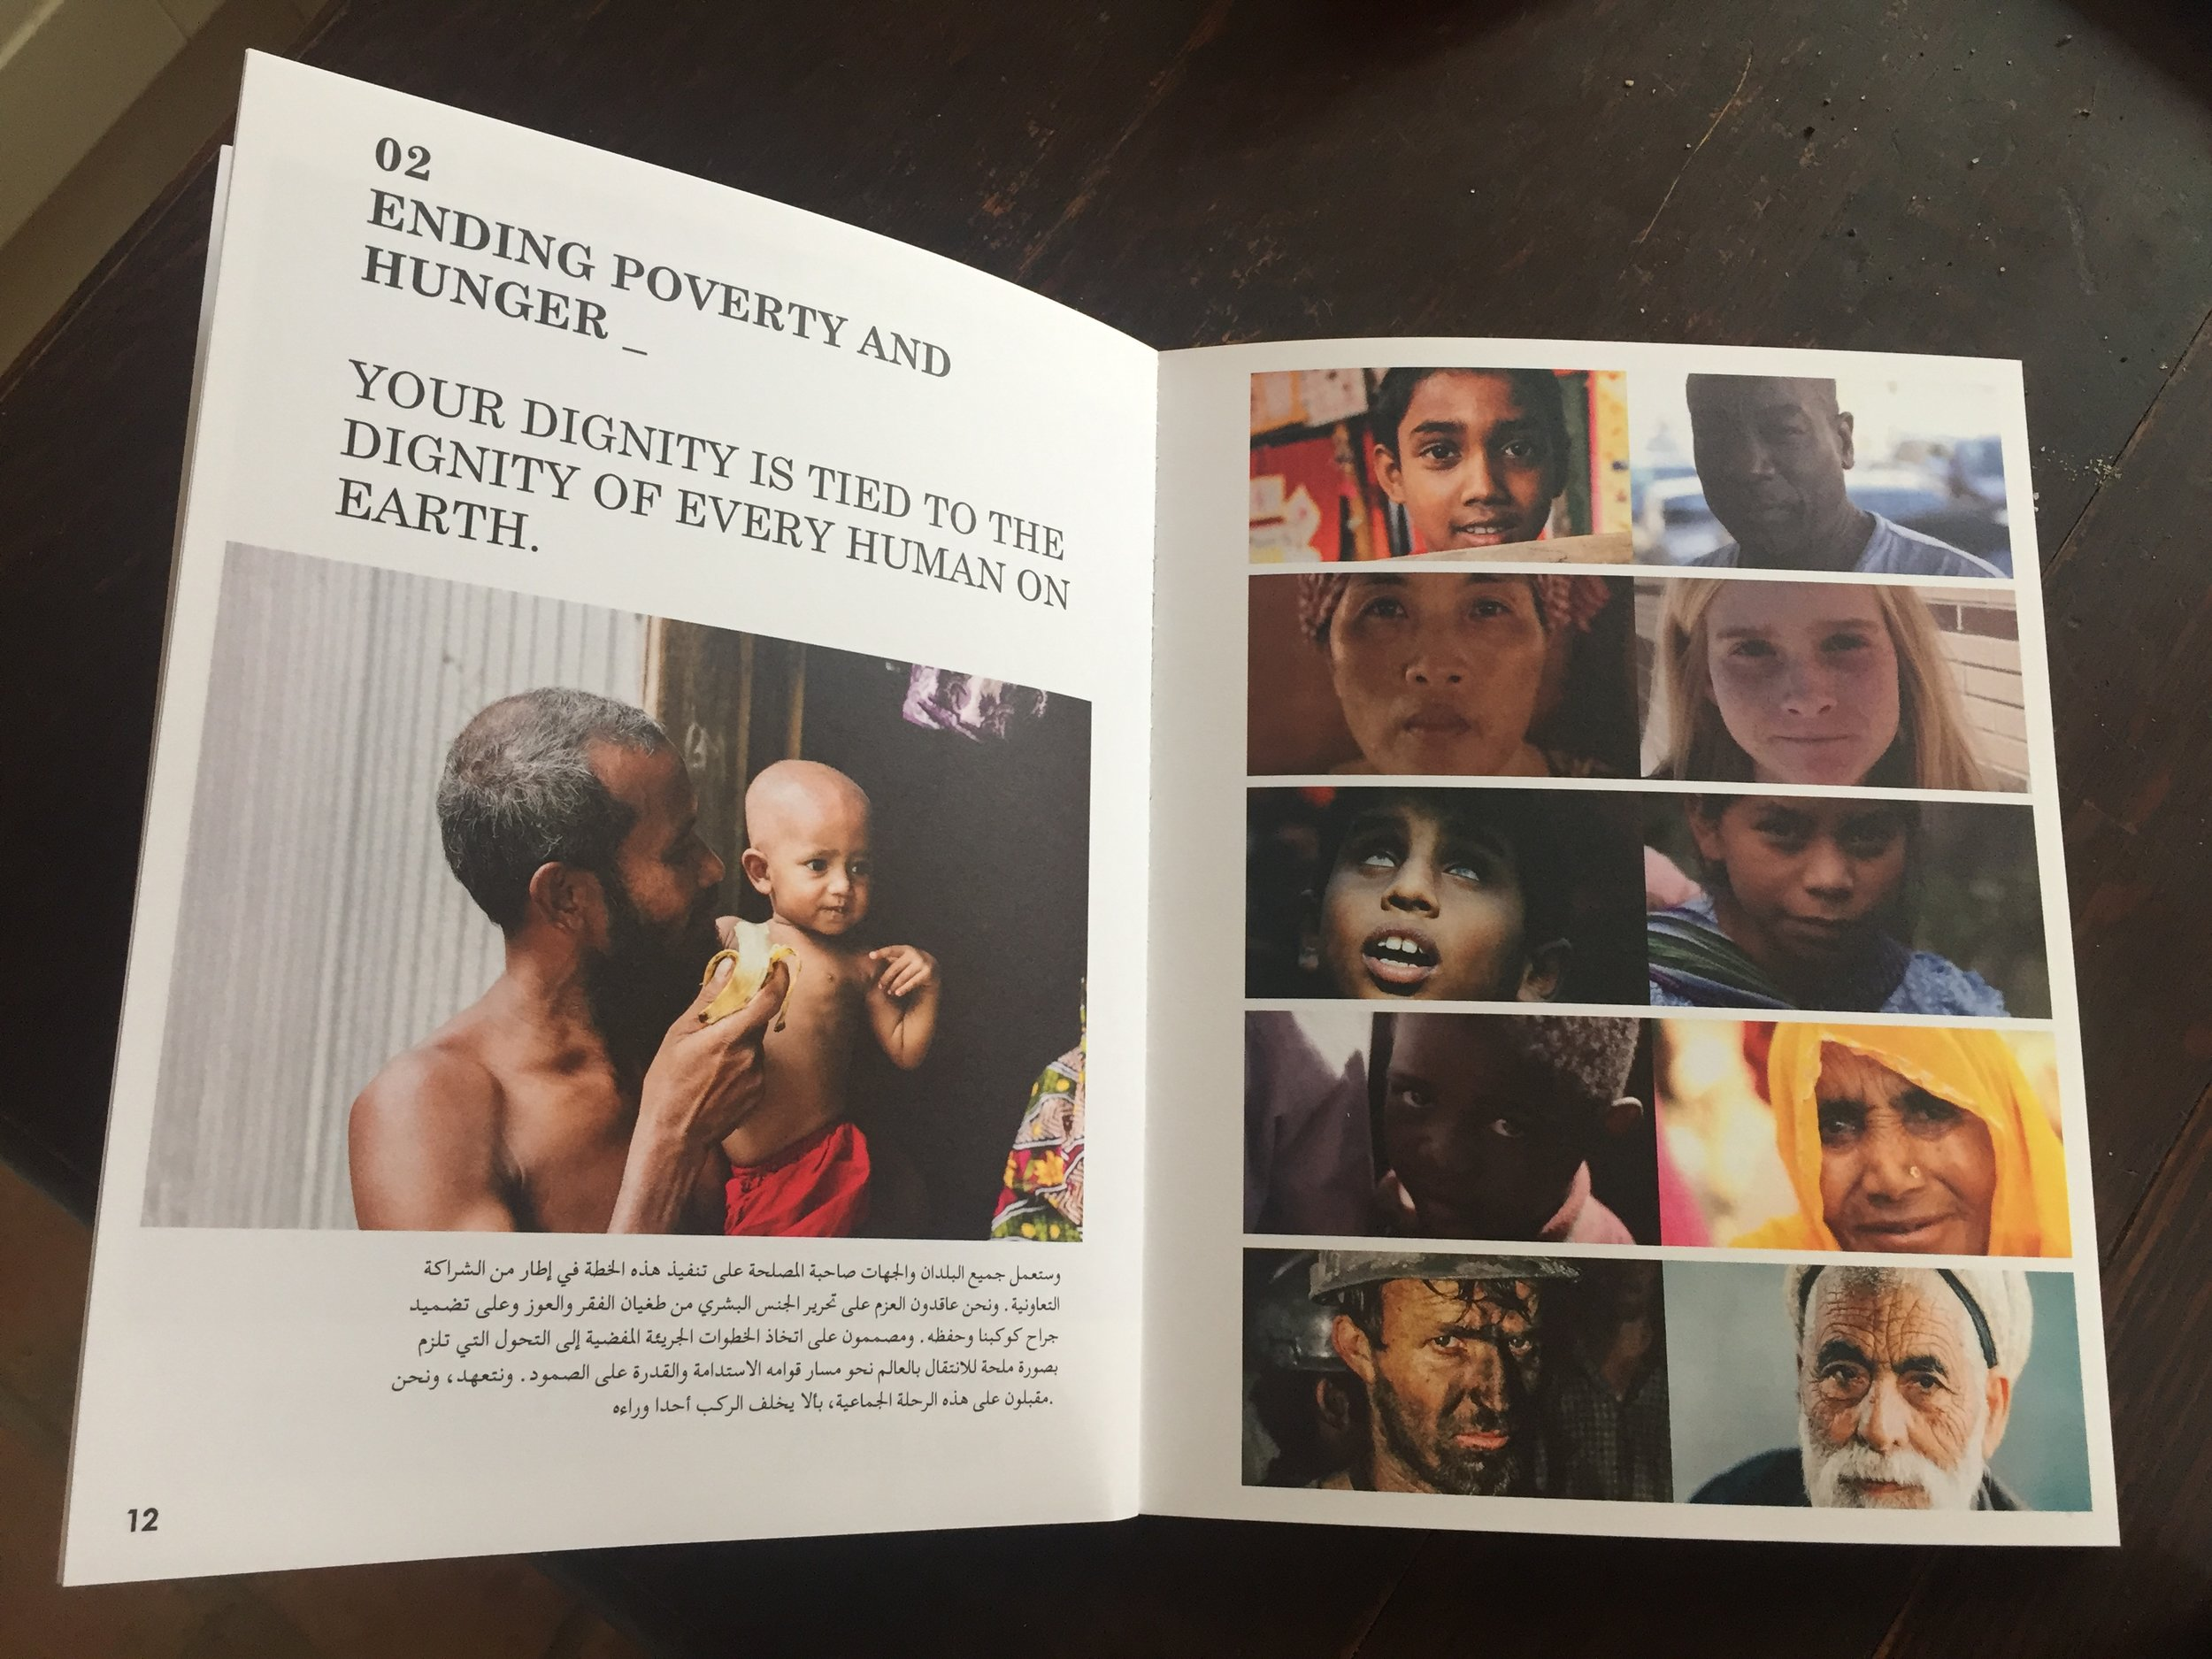 Transforming Our World   Long form book to accompany film released at 70th annual UNGA to celebrate the new millennium development goals. Partners included: HUMAN and the UN.